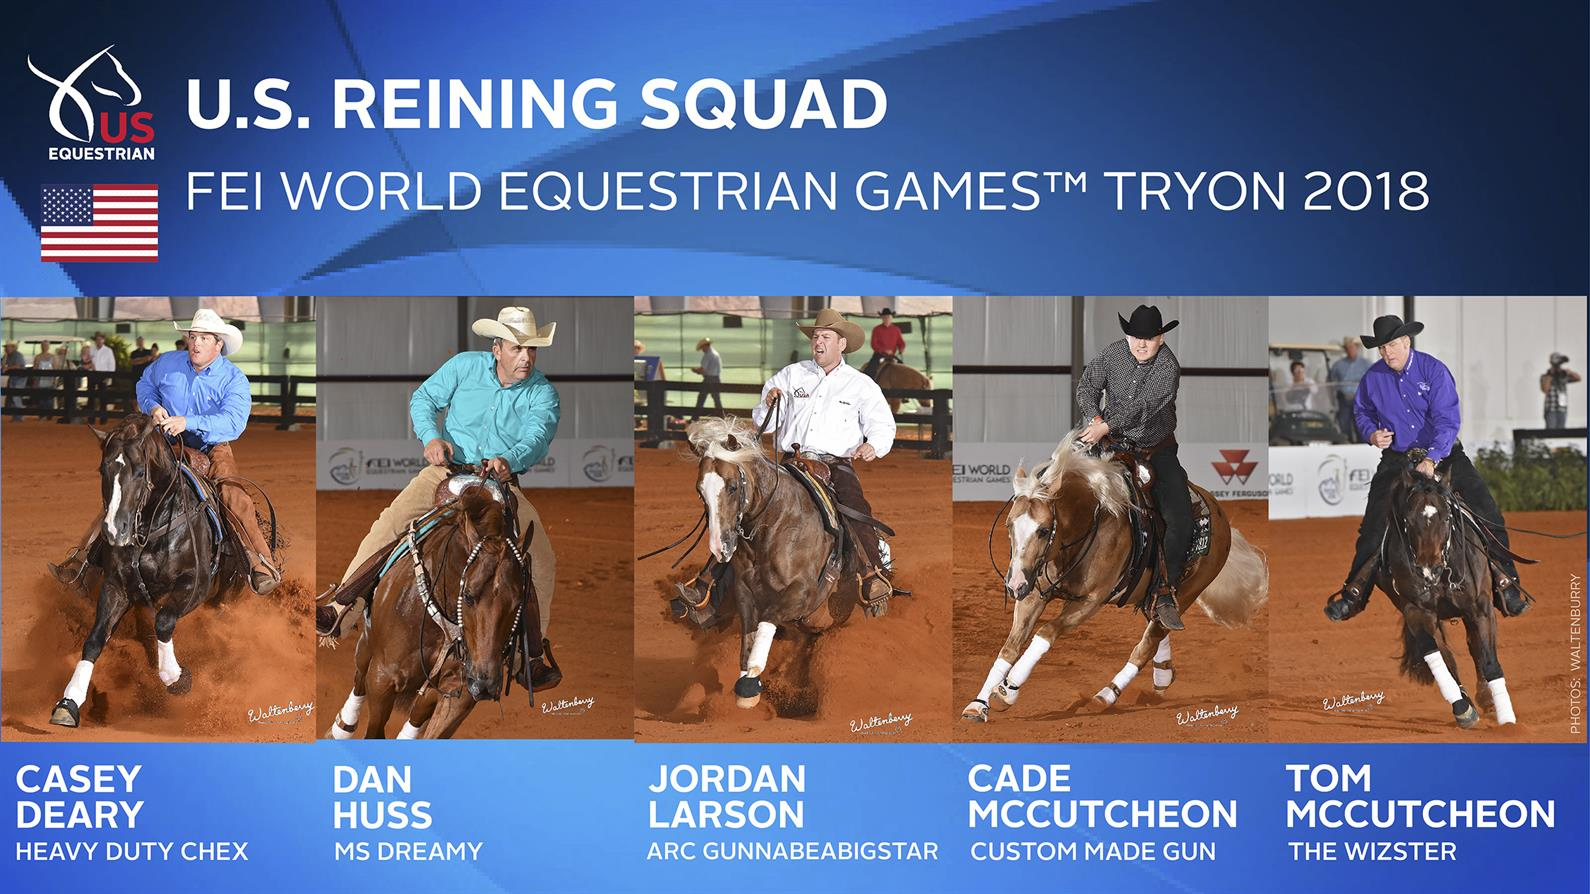 U.S. Reining Team for the 2018 WEG